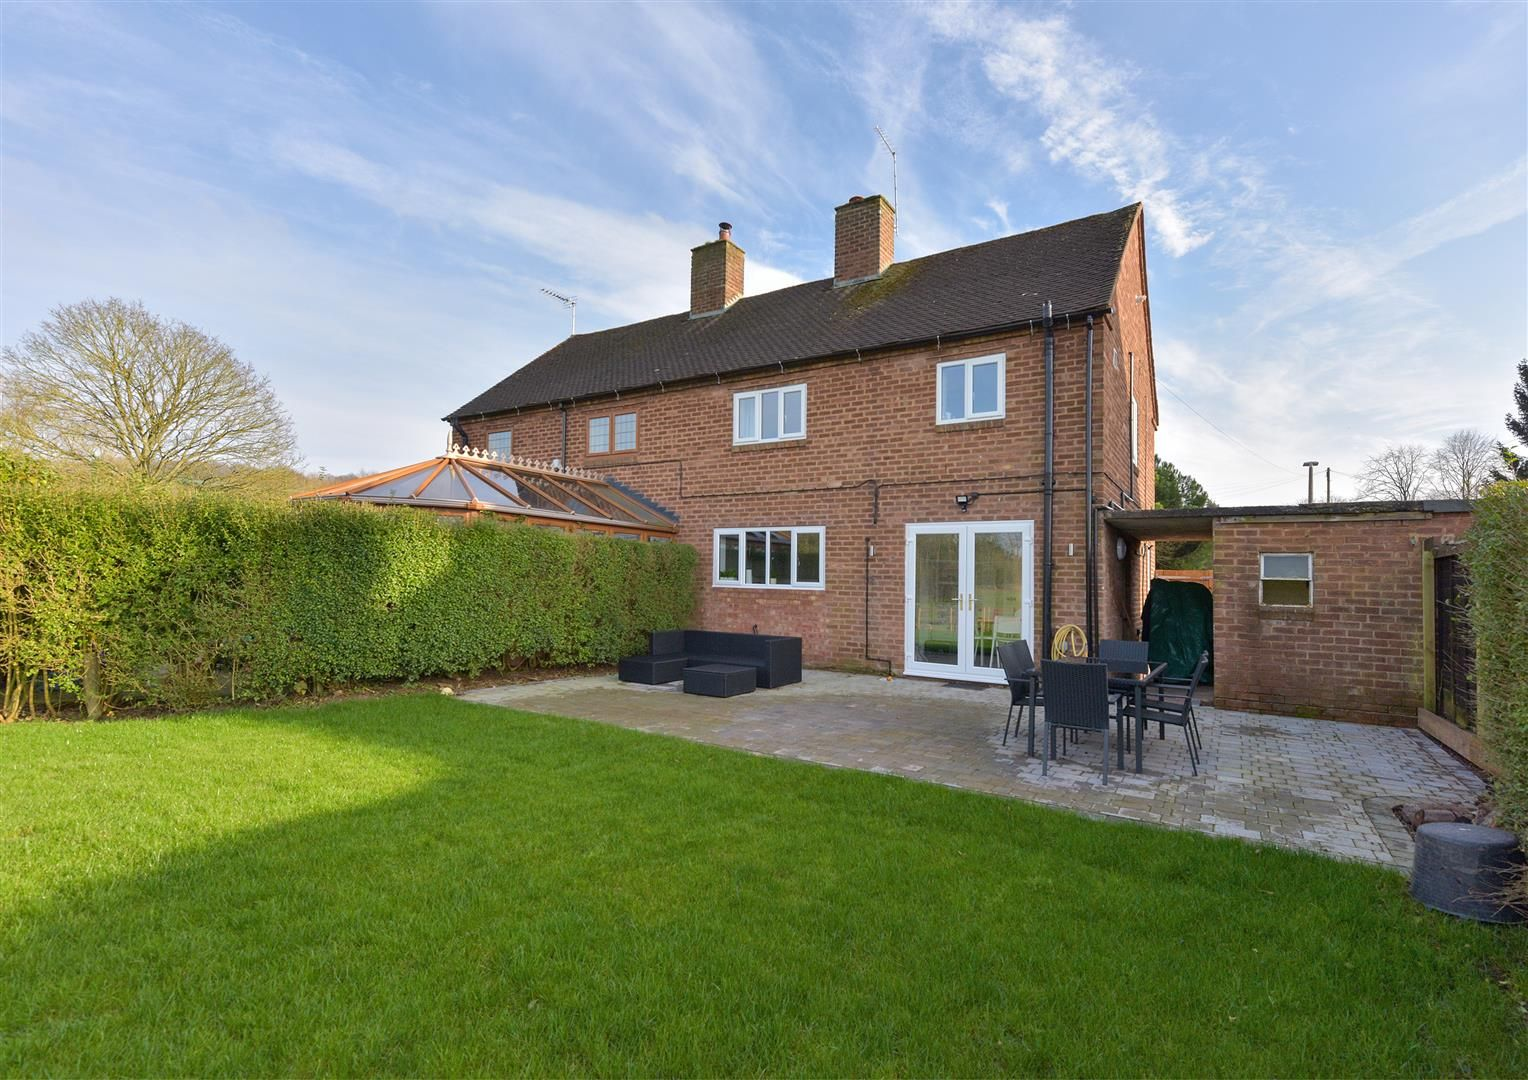 3 bed house for sale in Clent 28